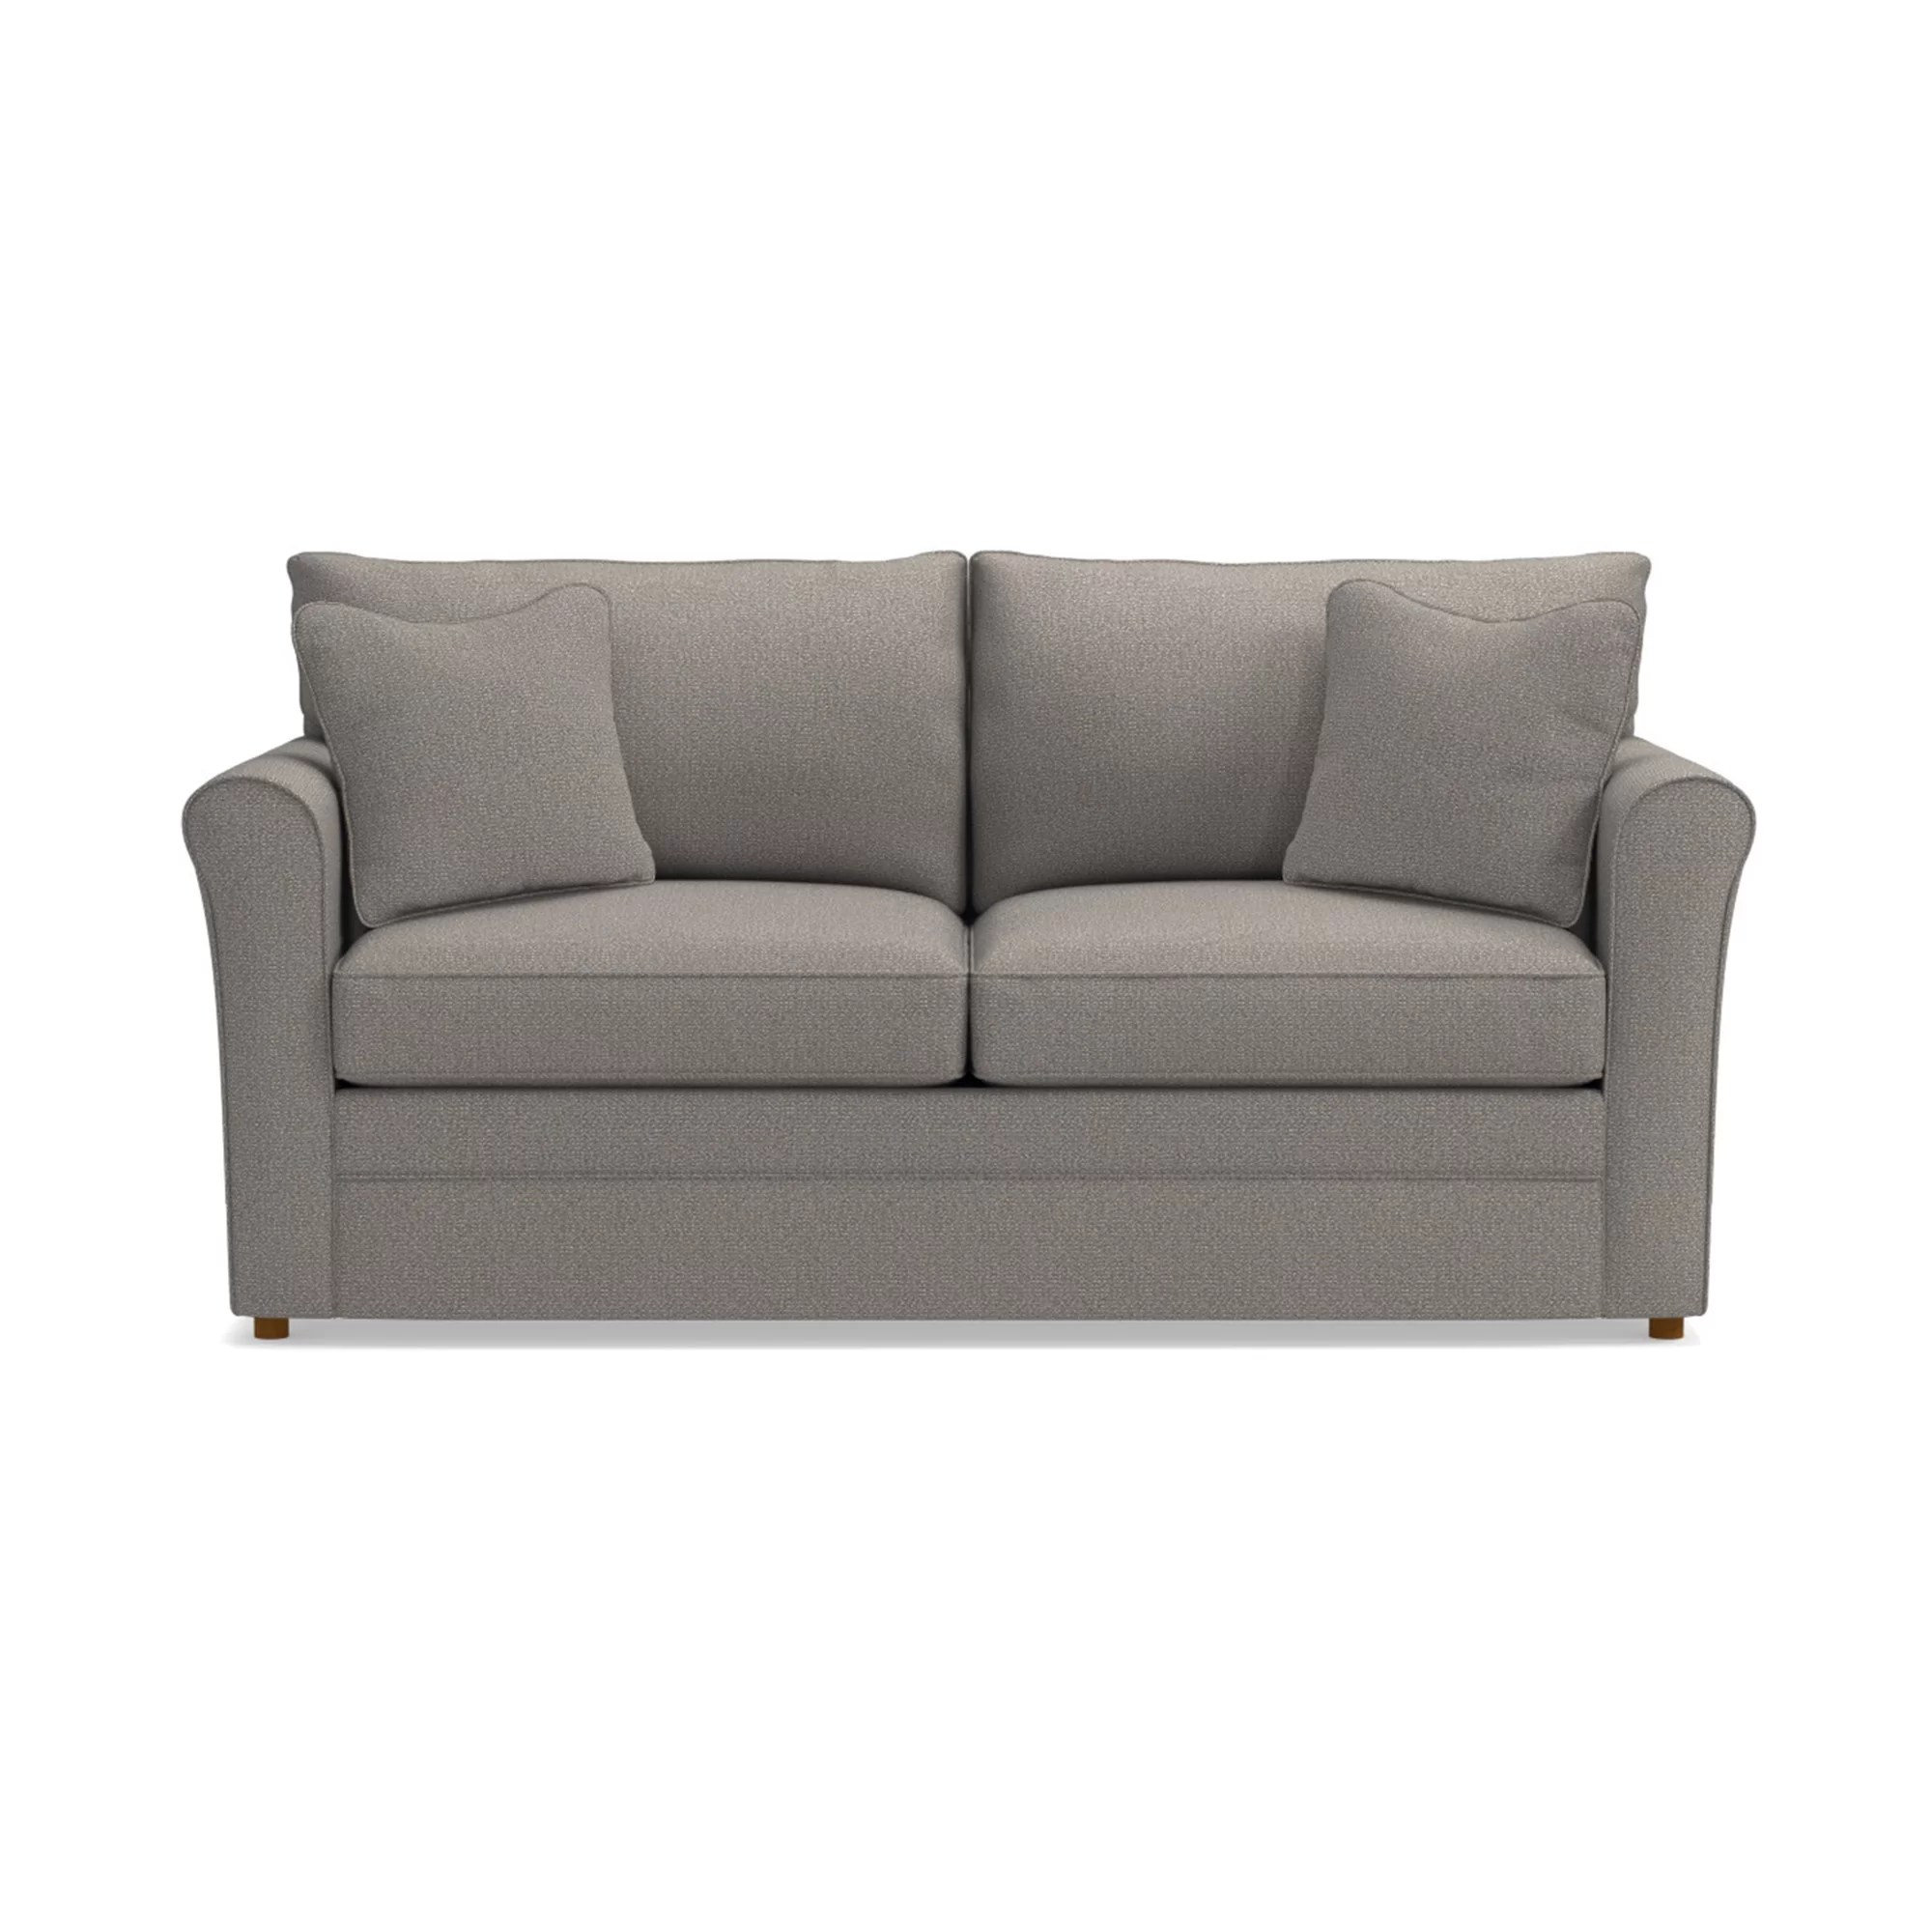 Jensen Sofa Bed Next Leah Supreme Comfort Sofa Bed